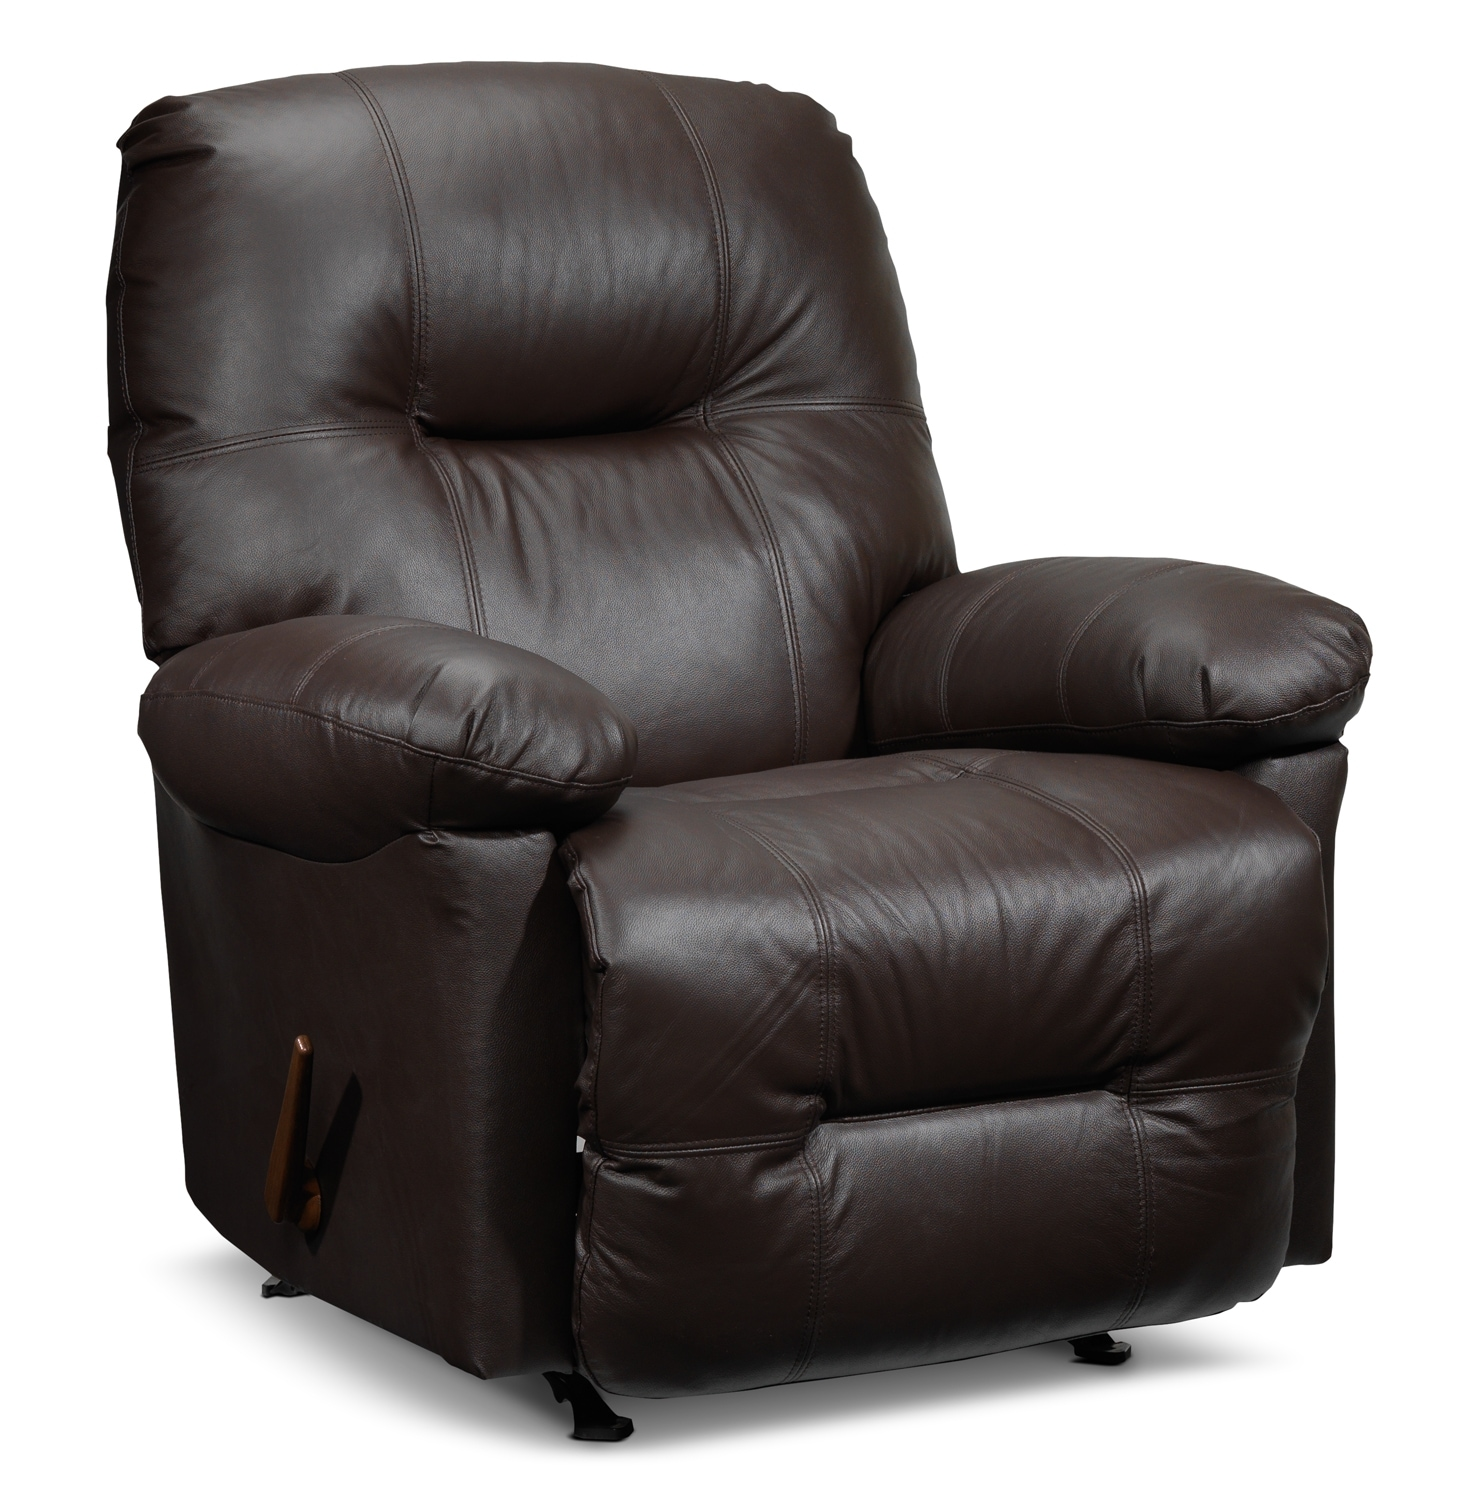 Living Room Furniture - Hunter Recliner - Chocolate